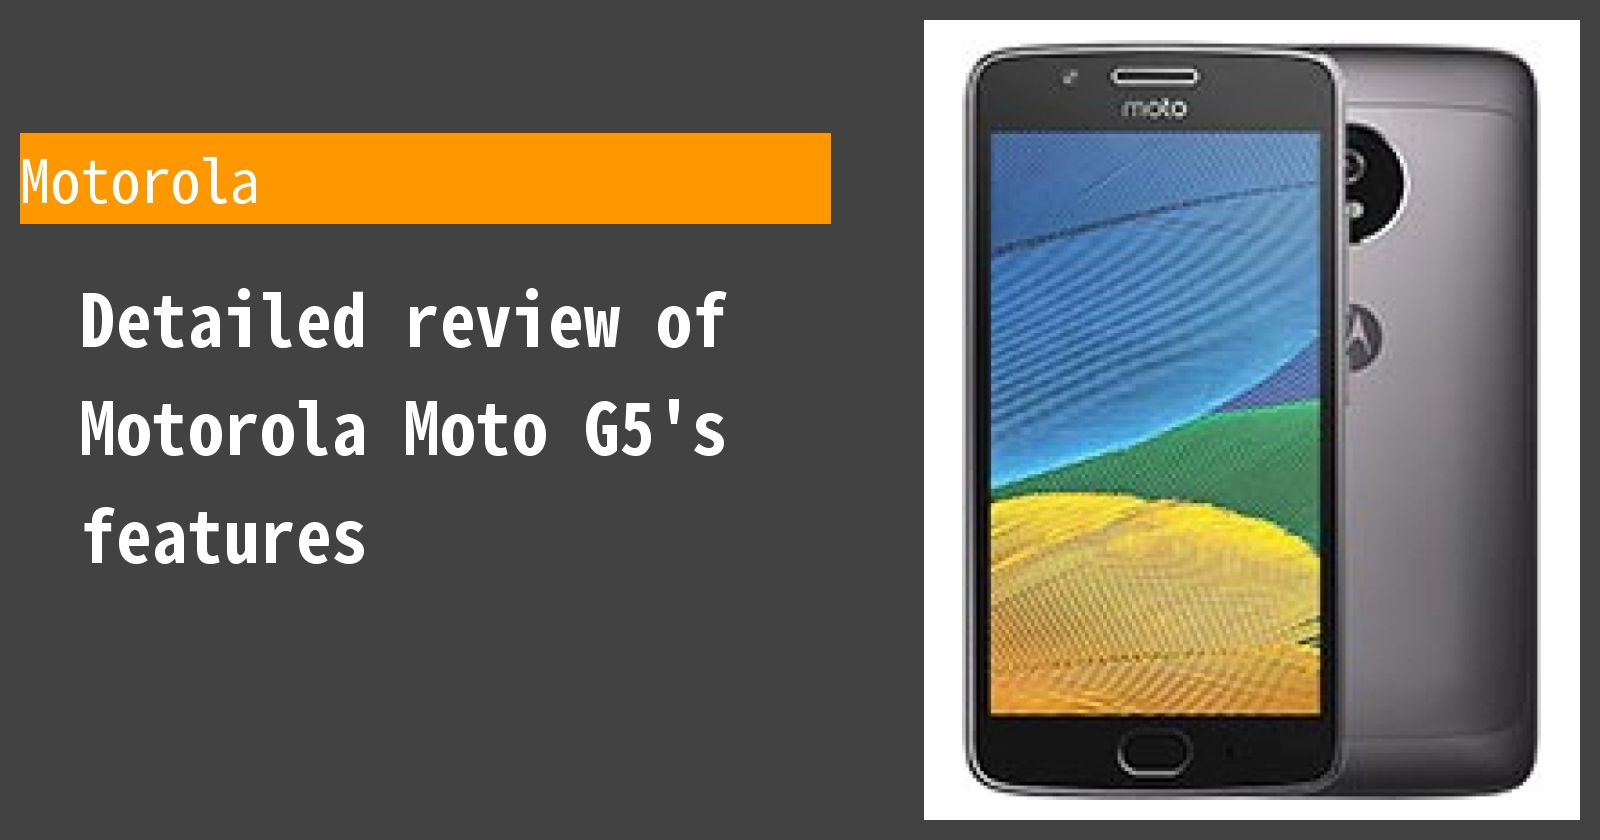 Detailed review of Motorola Moto G5's features